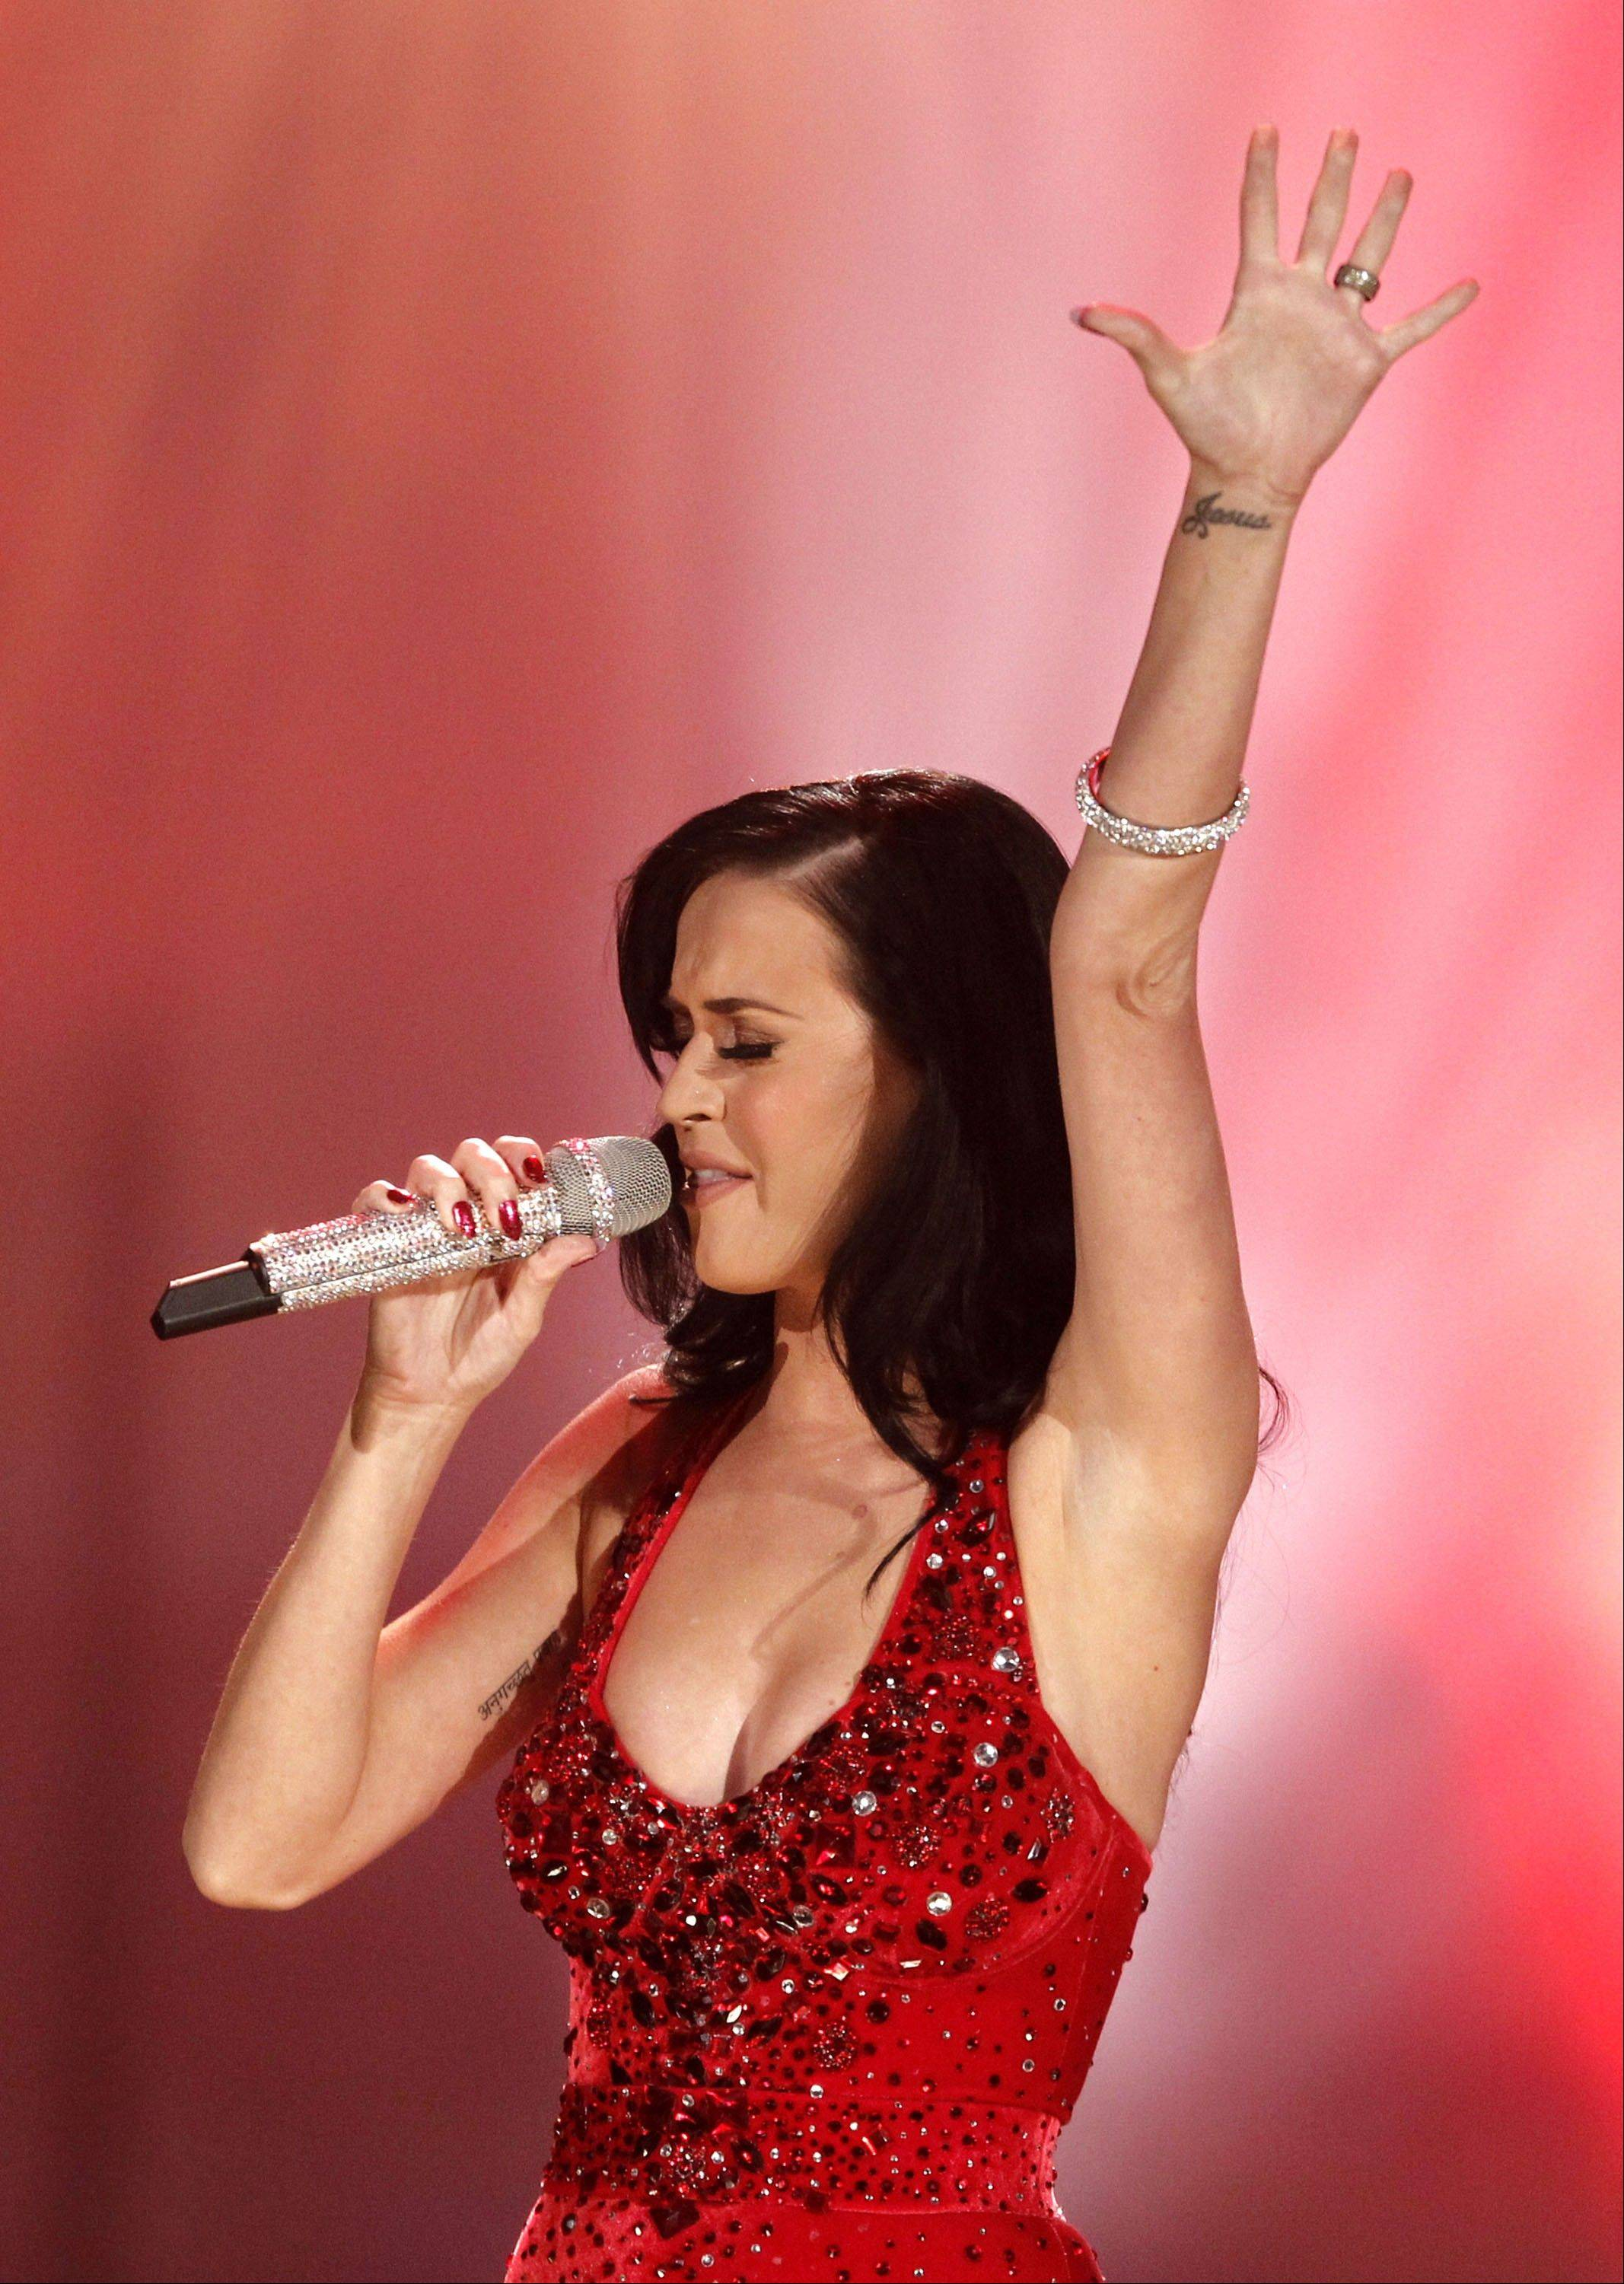 Katy Perry will perform a make-up show Sunday at Allstate Arena.